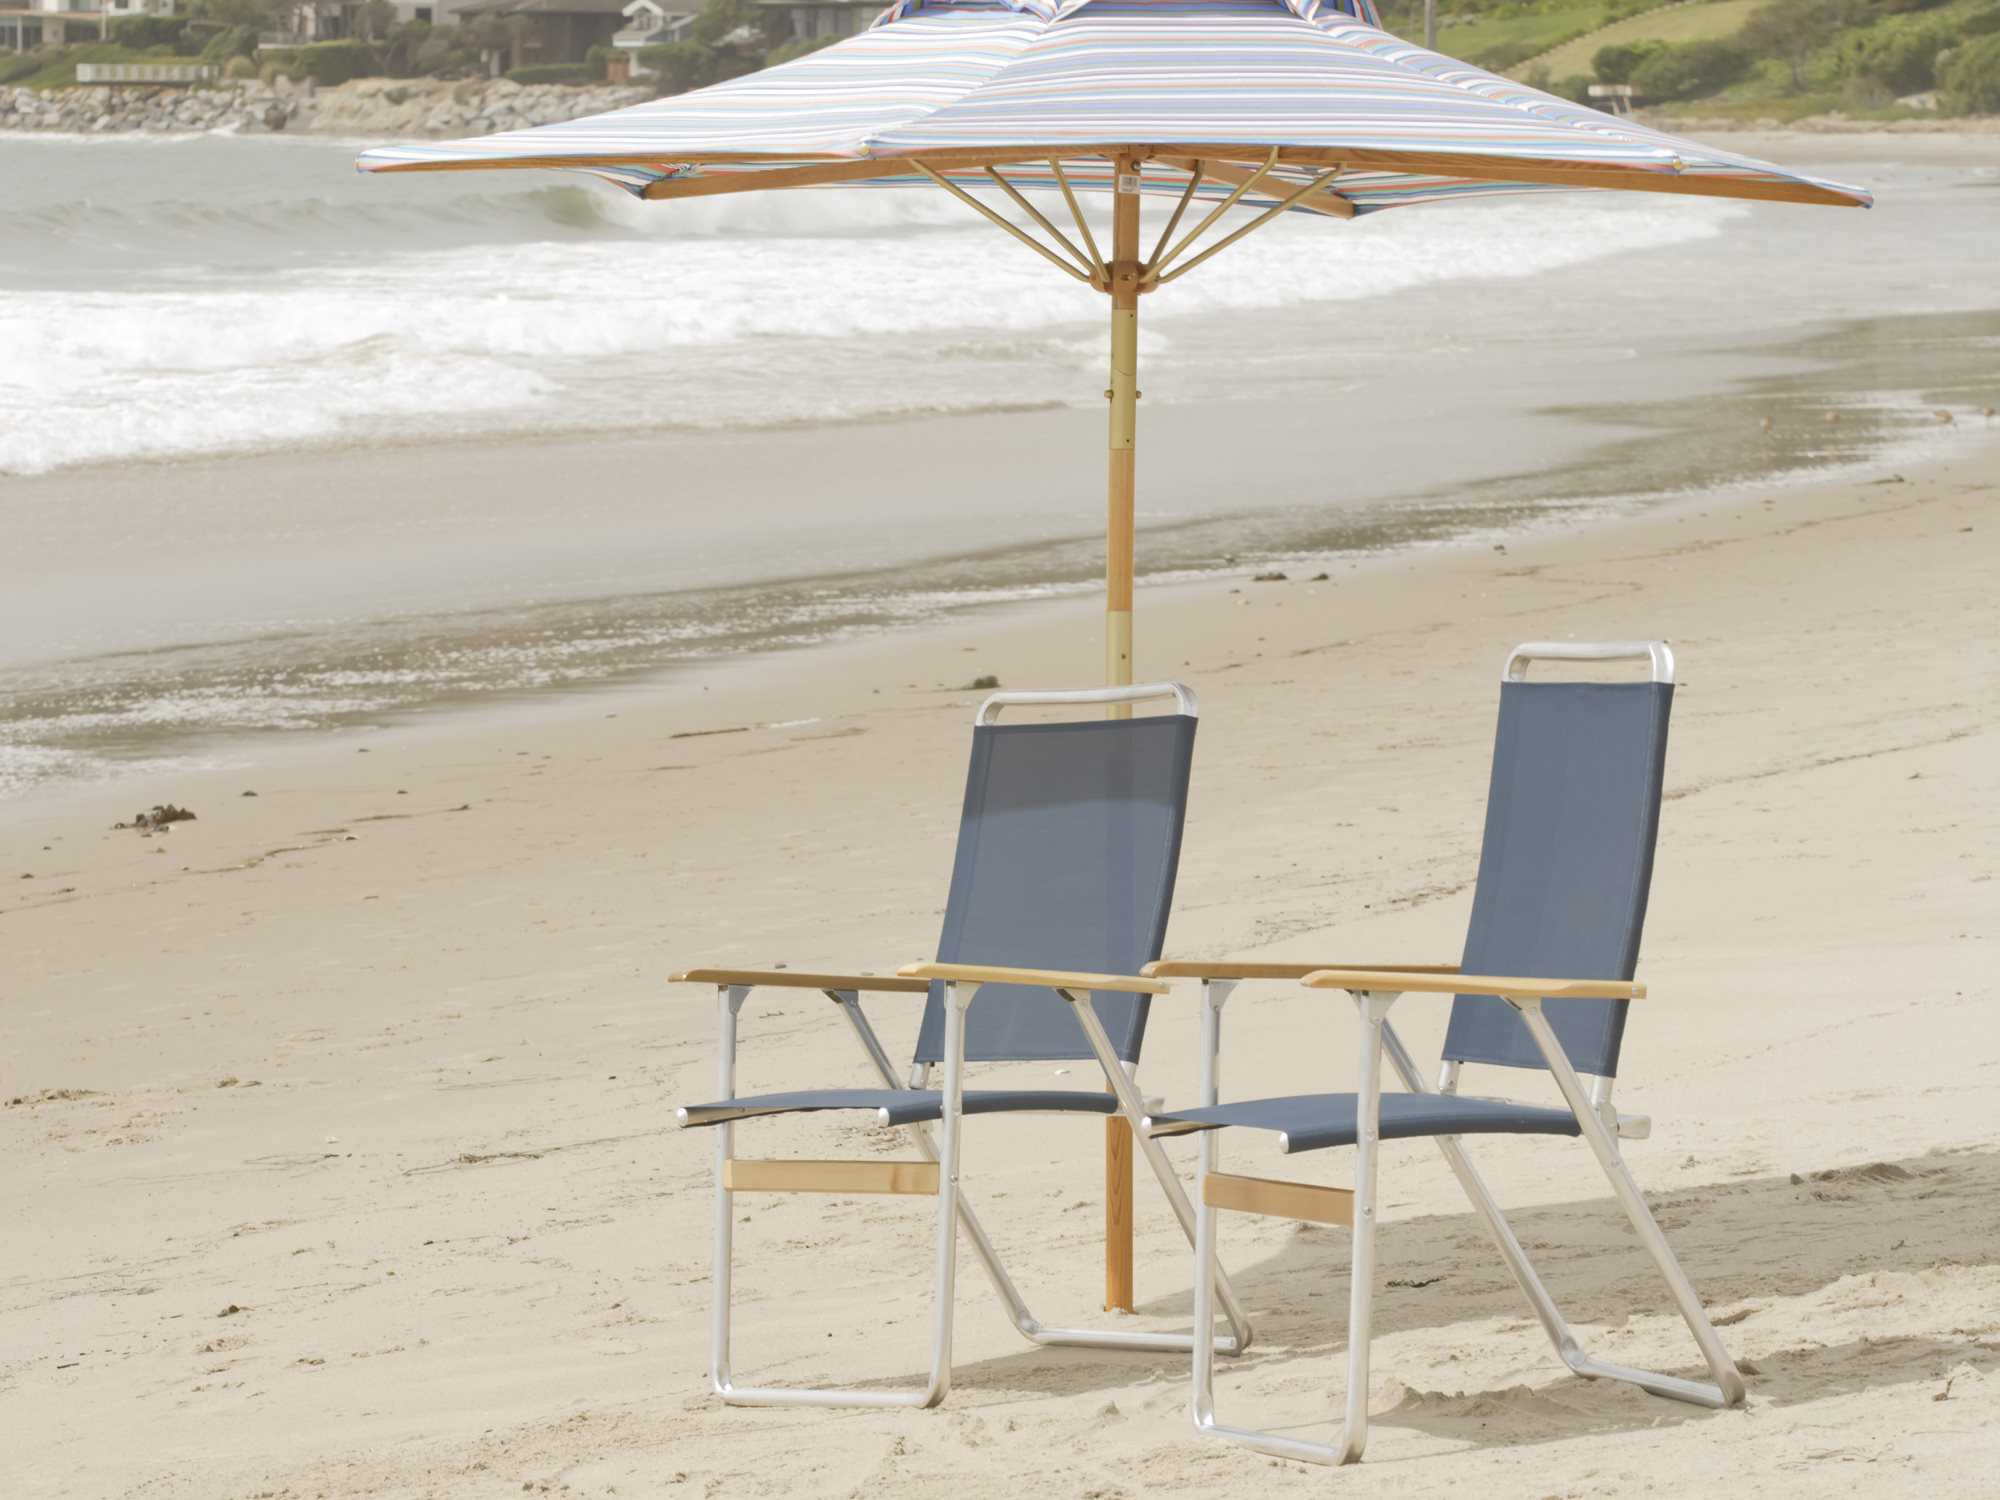 Telescope Casual Beach Chairs Aluminum Lounge Set Beachset